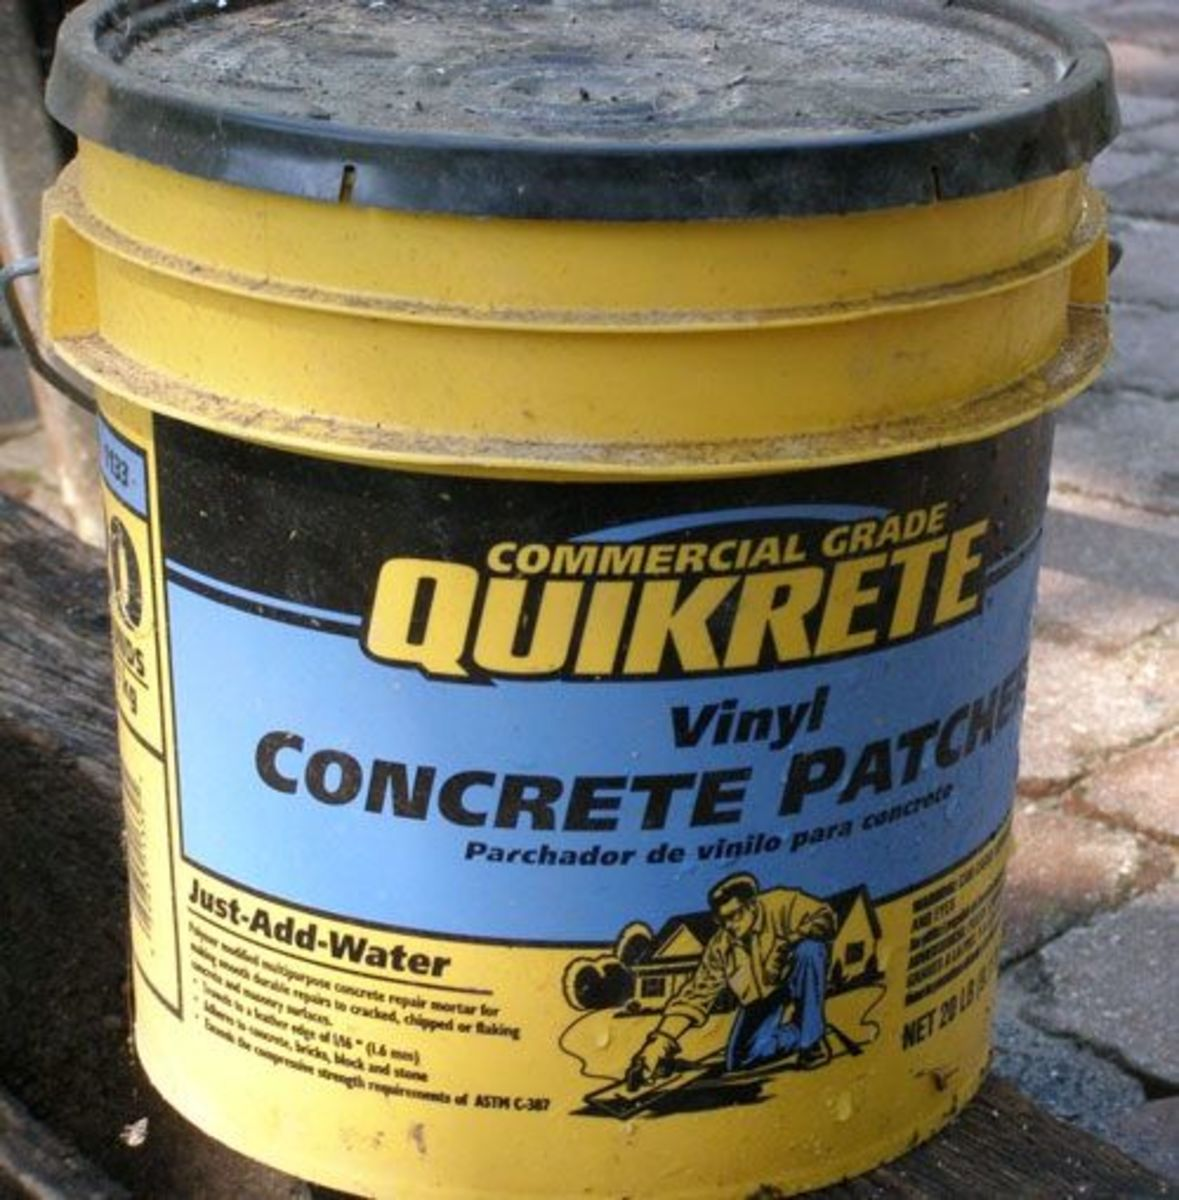 All you need to make garden crafts from lightweight concrete